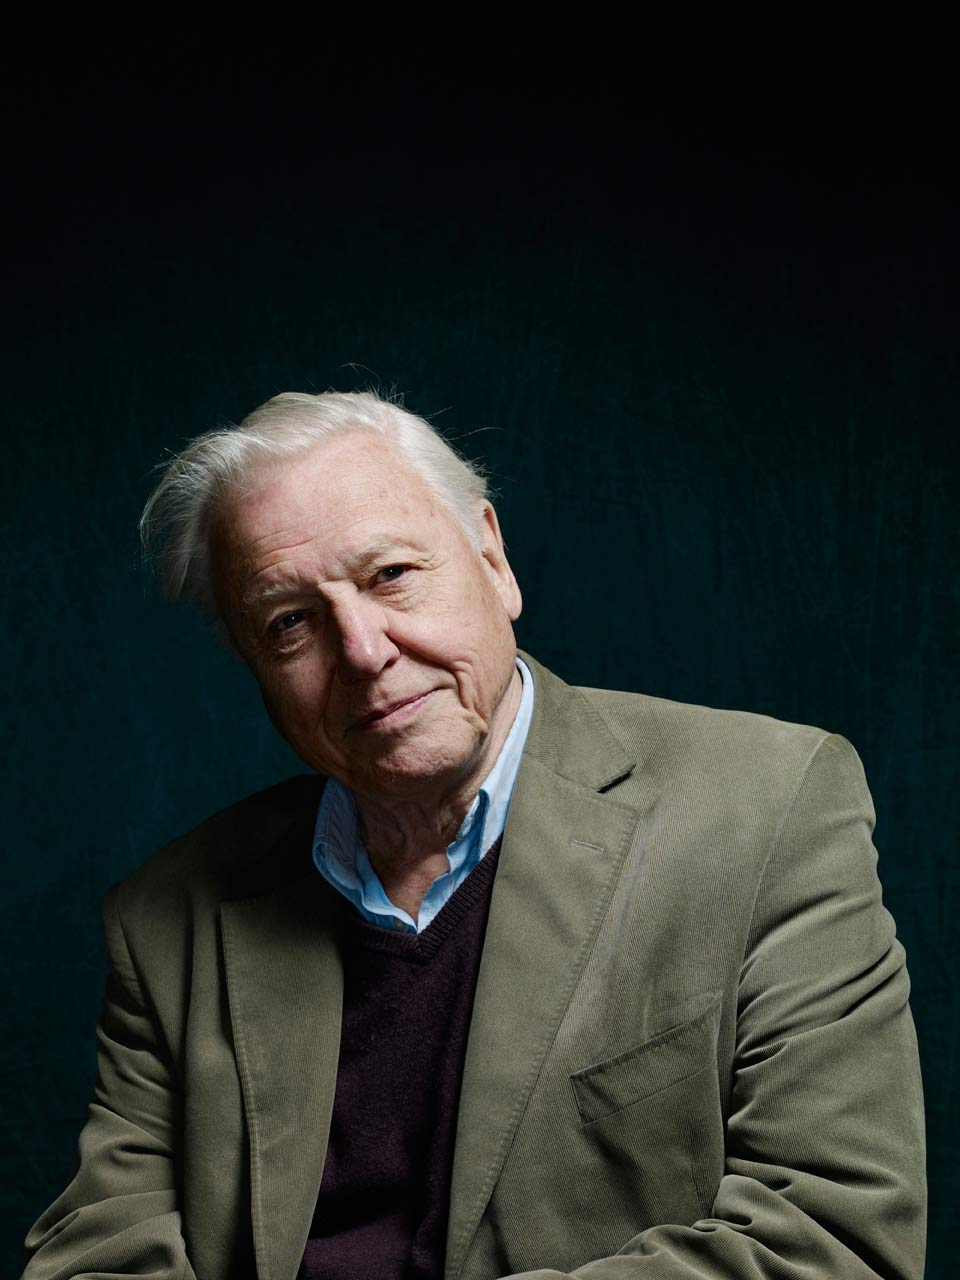 David Attenborough: i leader negano il cambiamento ...